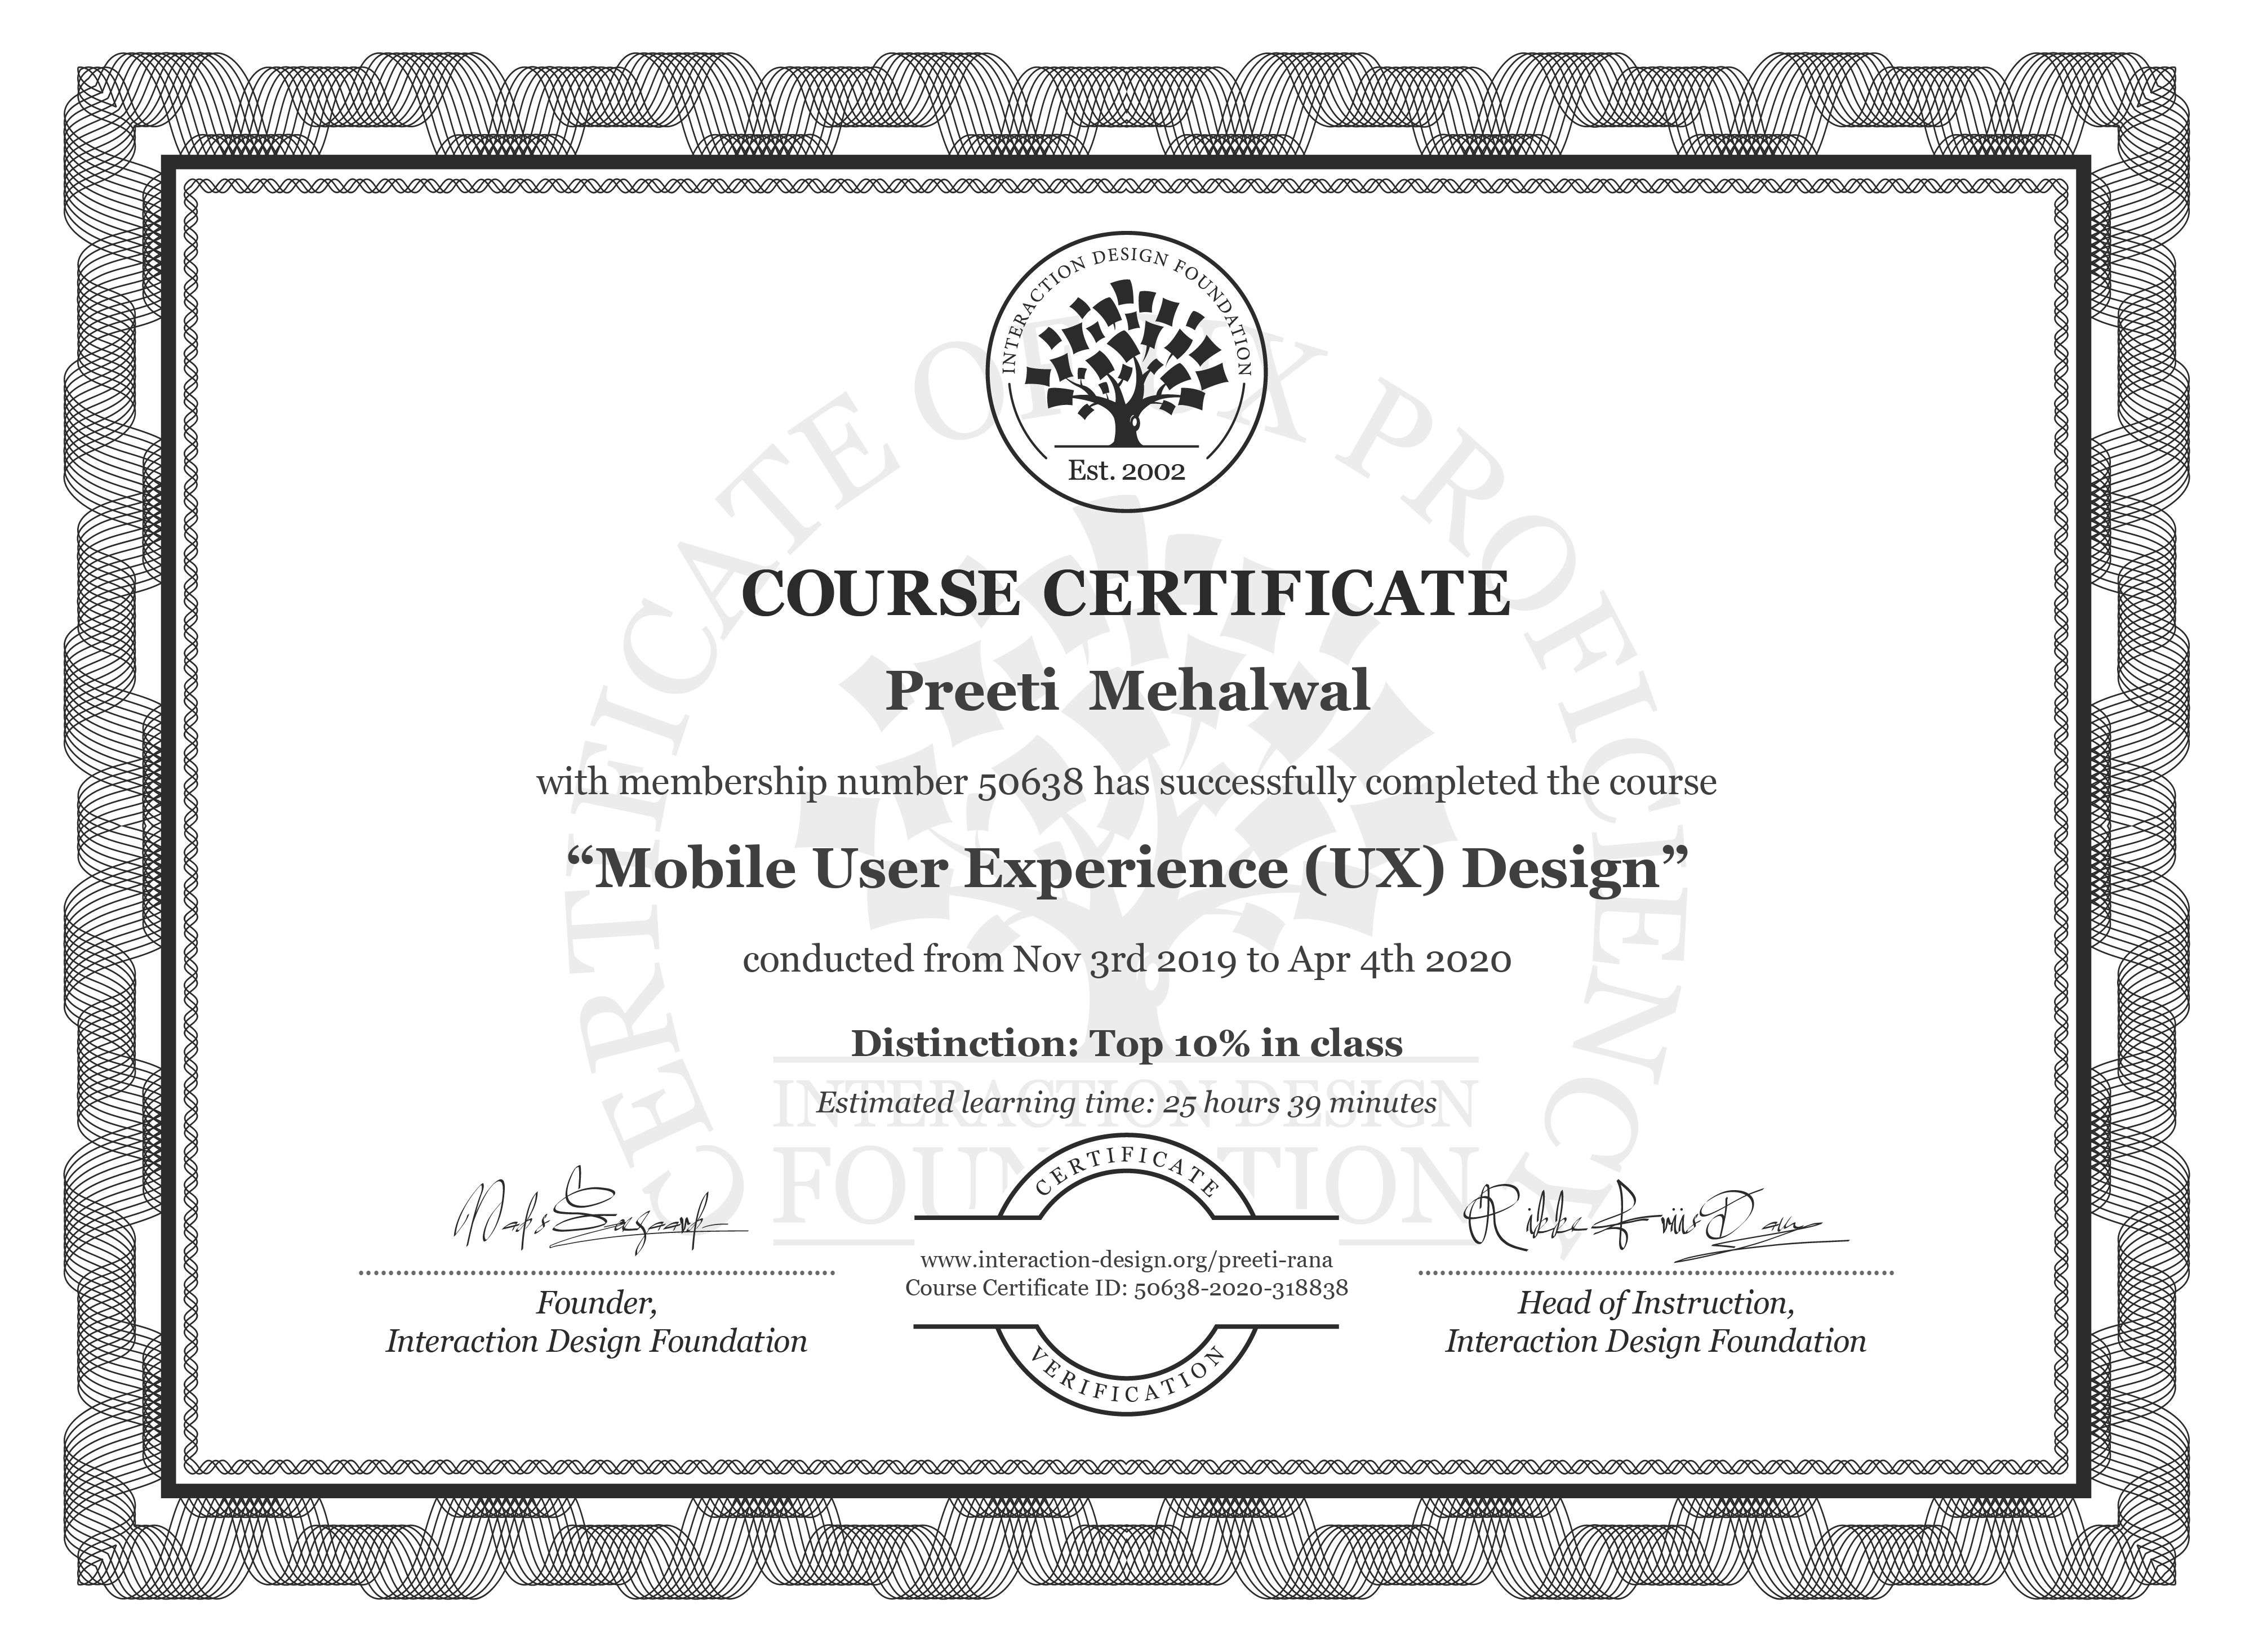 Preeti  Mehalwal's Course Certificate: Mobile User Experience (UX) Design